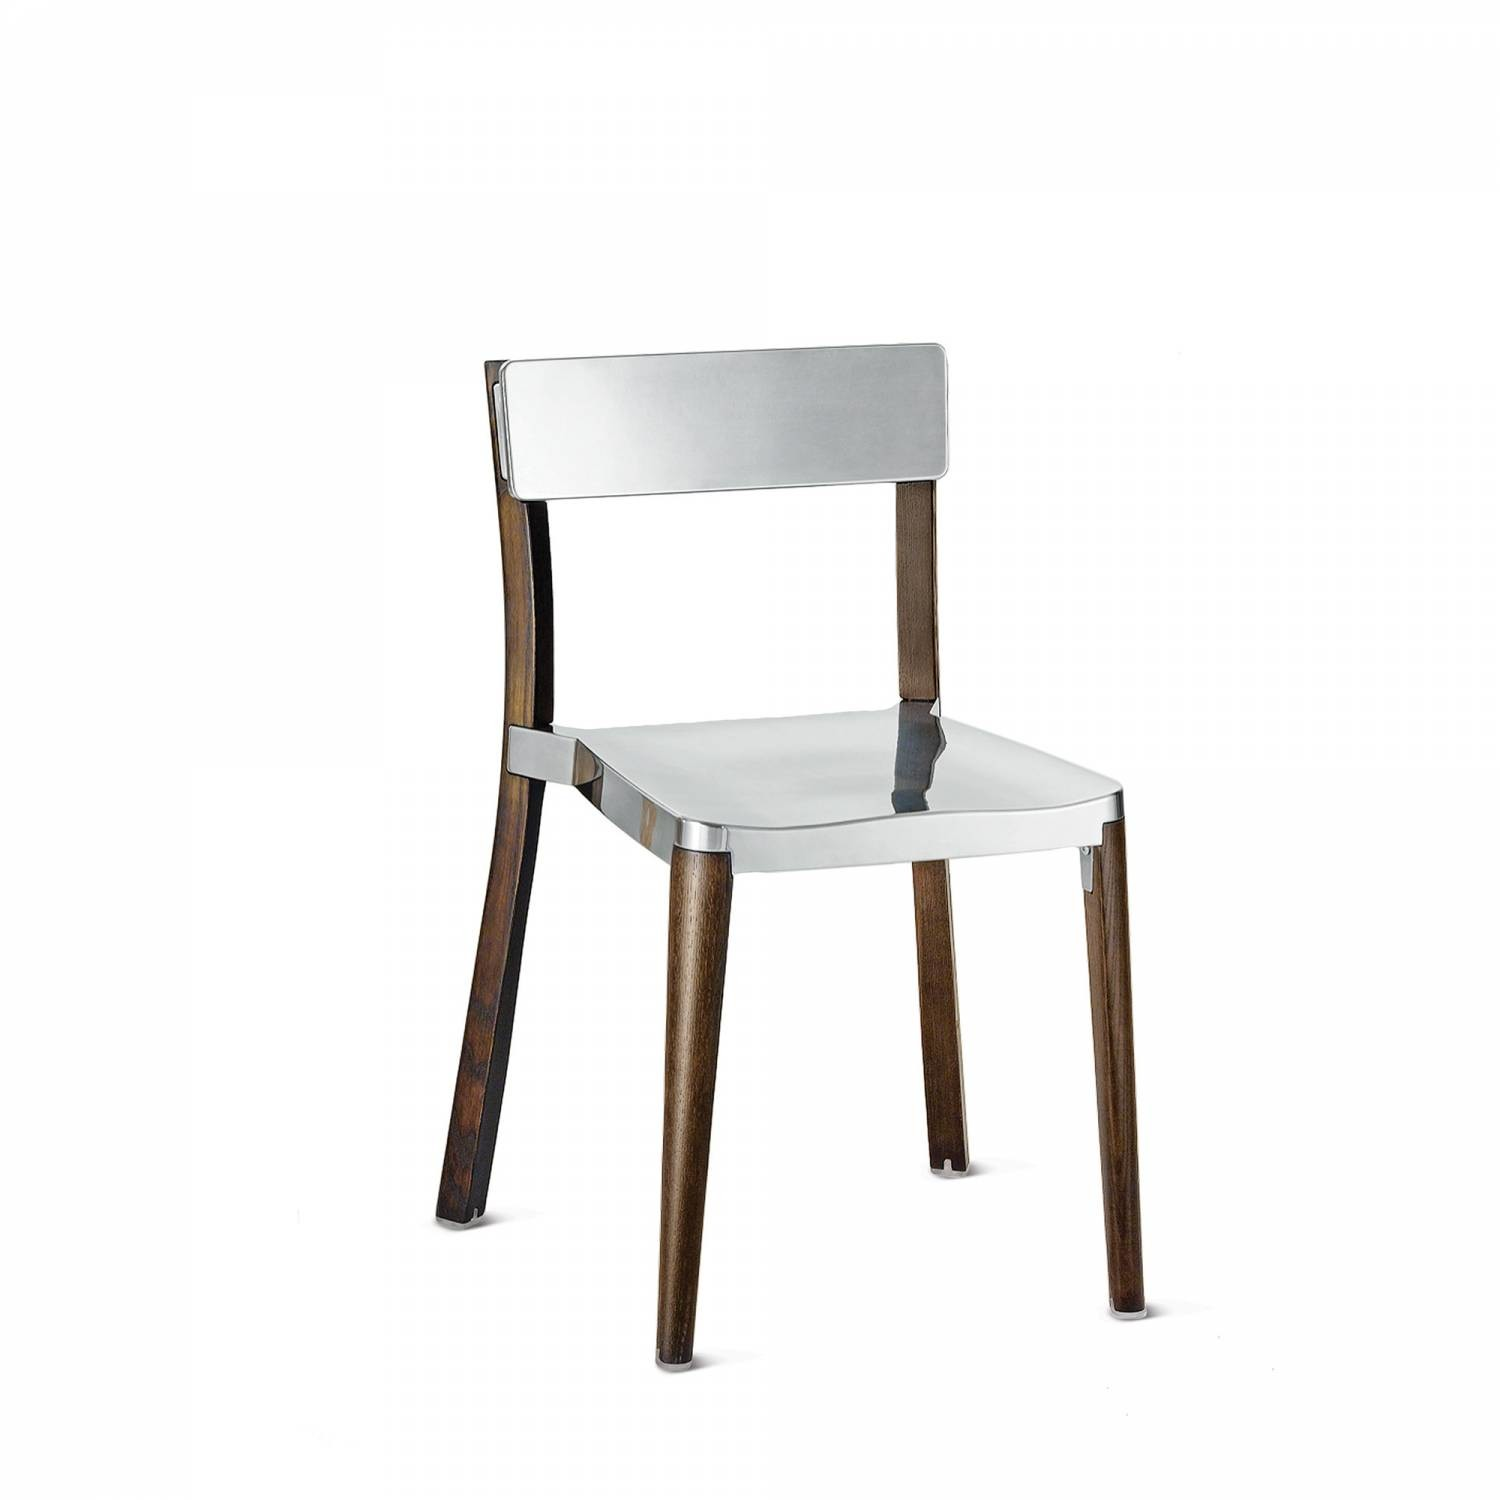 Lancaster Stacking Chair Polished Aluminium, Dark Wood Base, Without Seat Pad, Without Back Pad